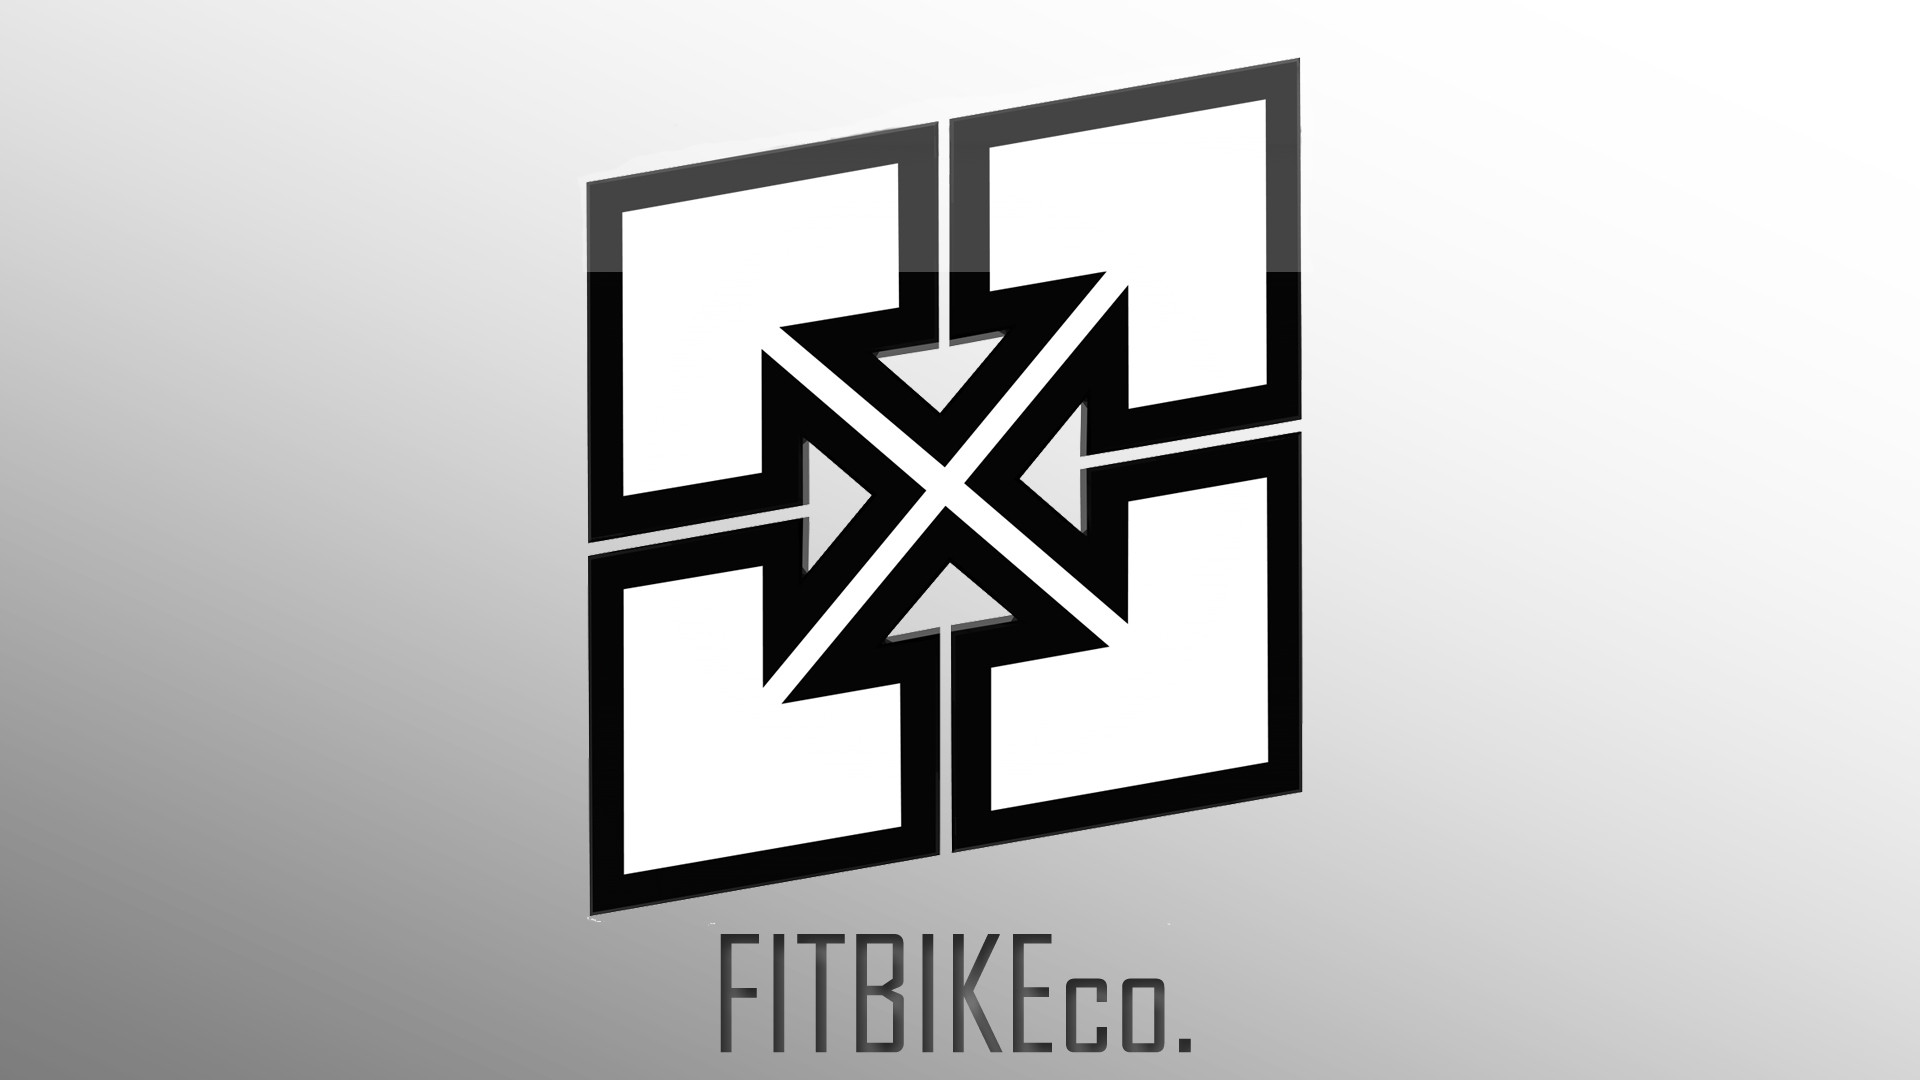 fit bike co WALLPER.jpg